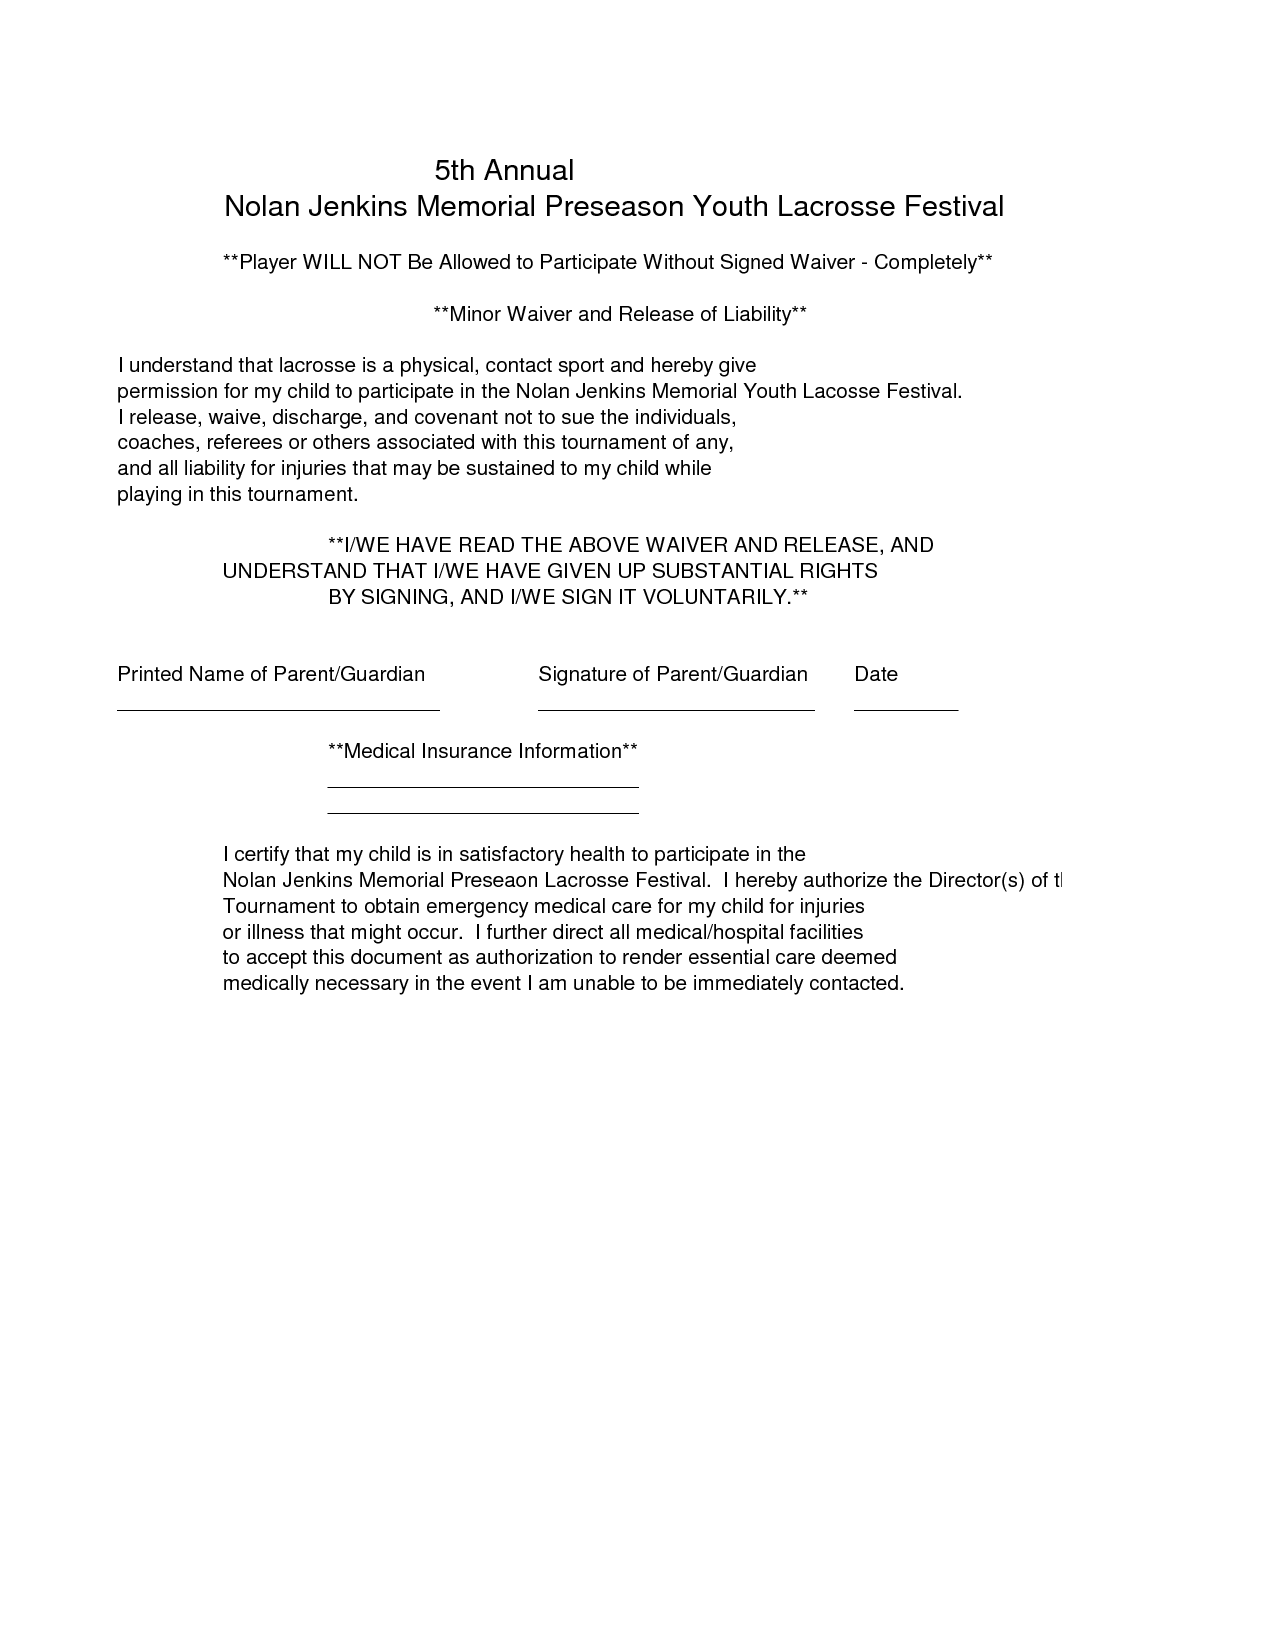 Waiver Of Liability Sample Swifterco liability waiver – Example of Liability Waiver